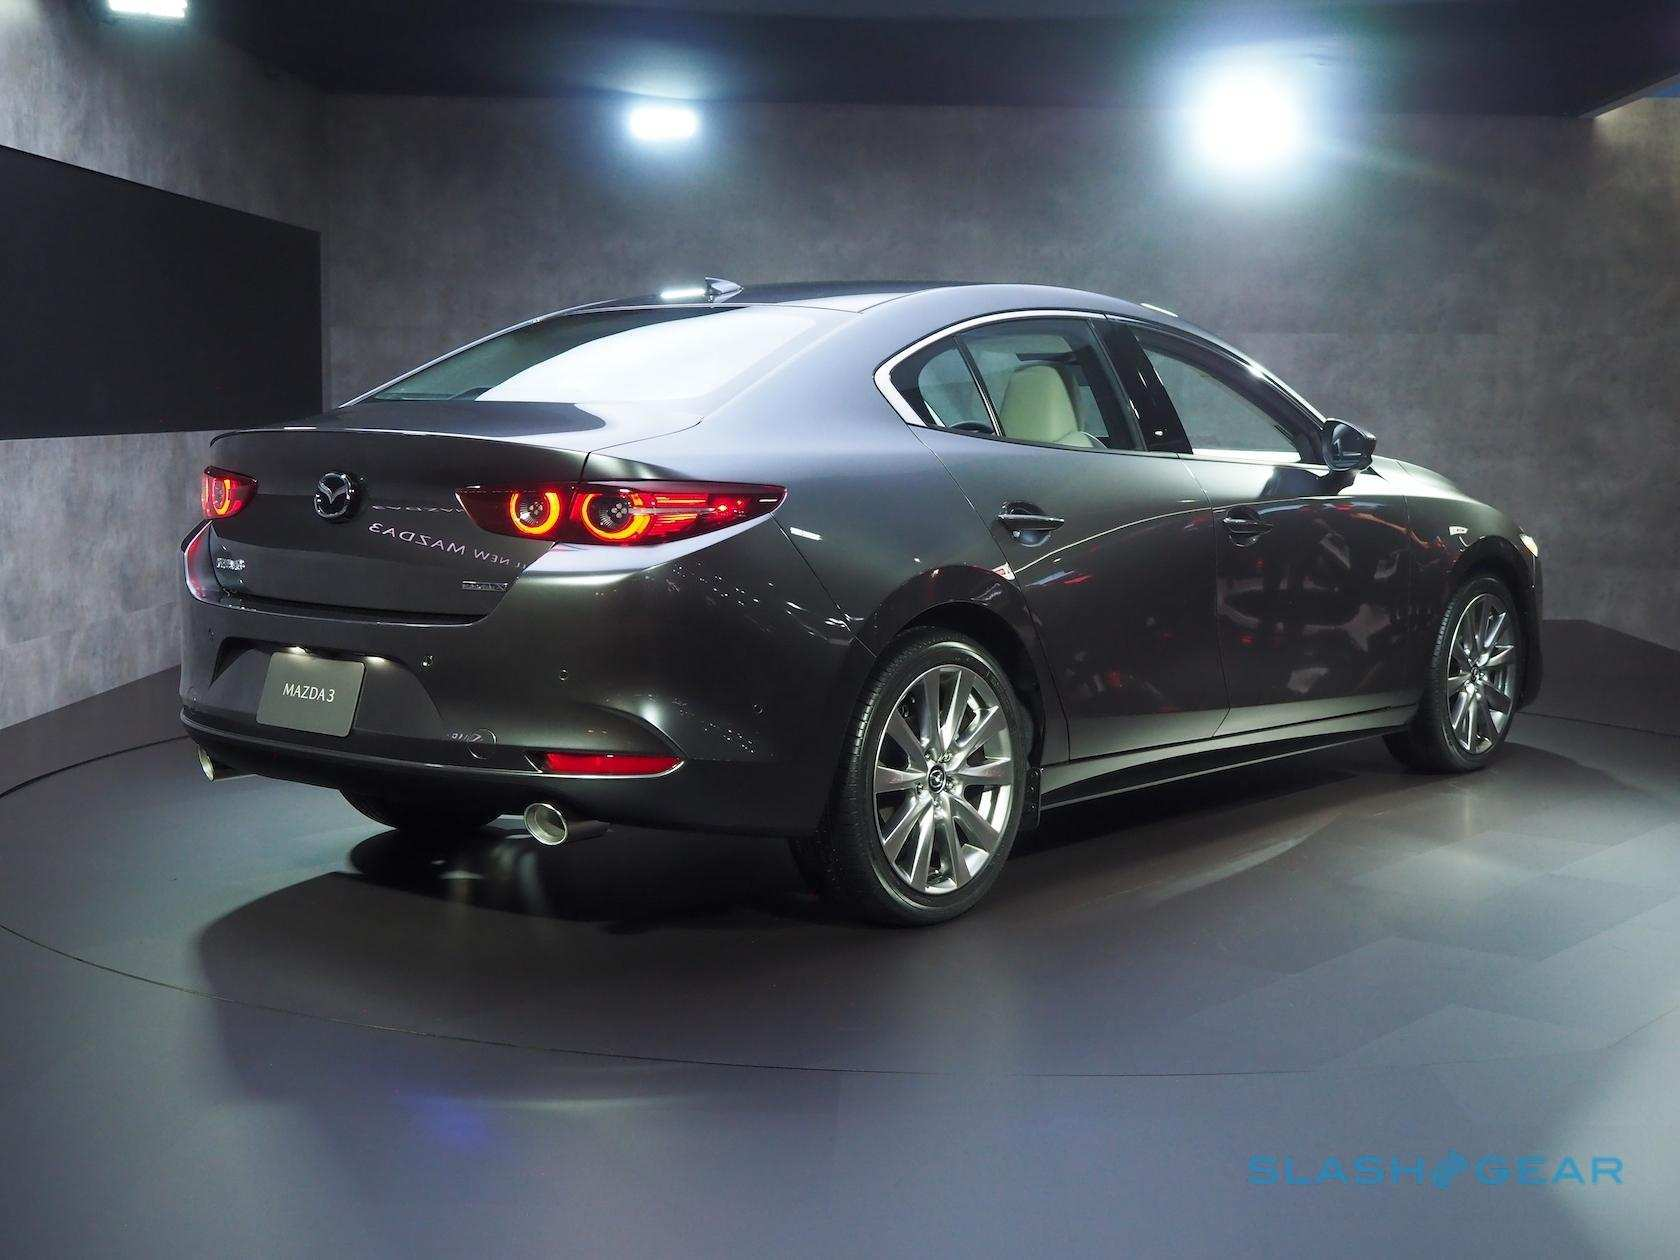 17 All New Mazda Sedan 2020 Prices with Mazda Sedan 2020